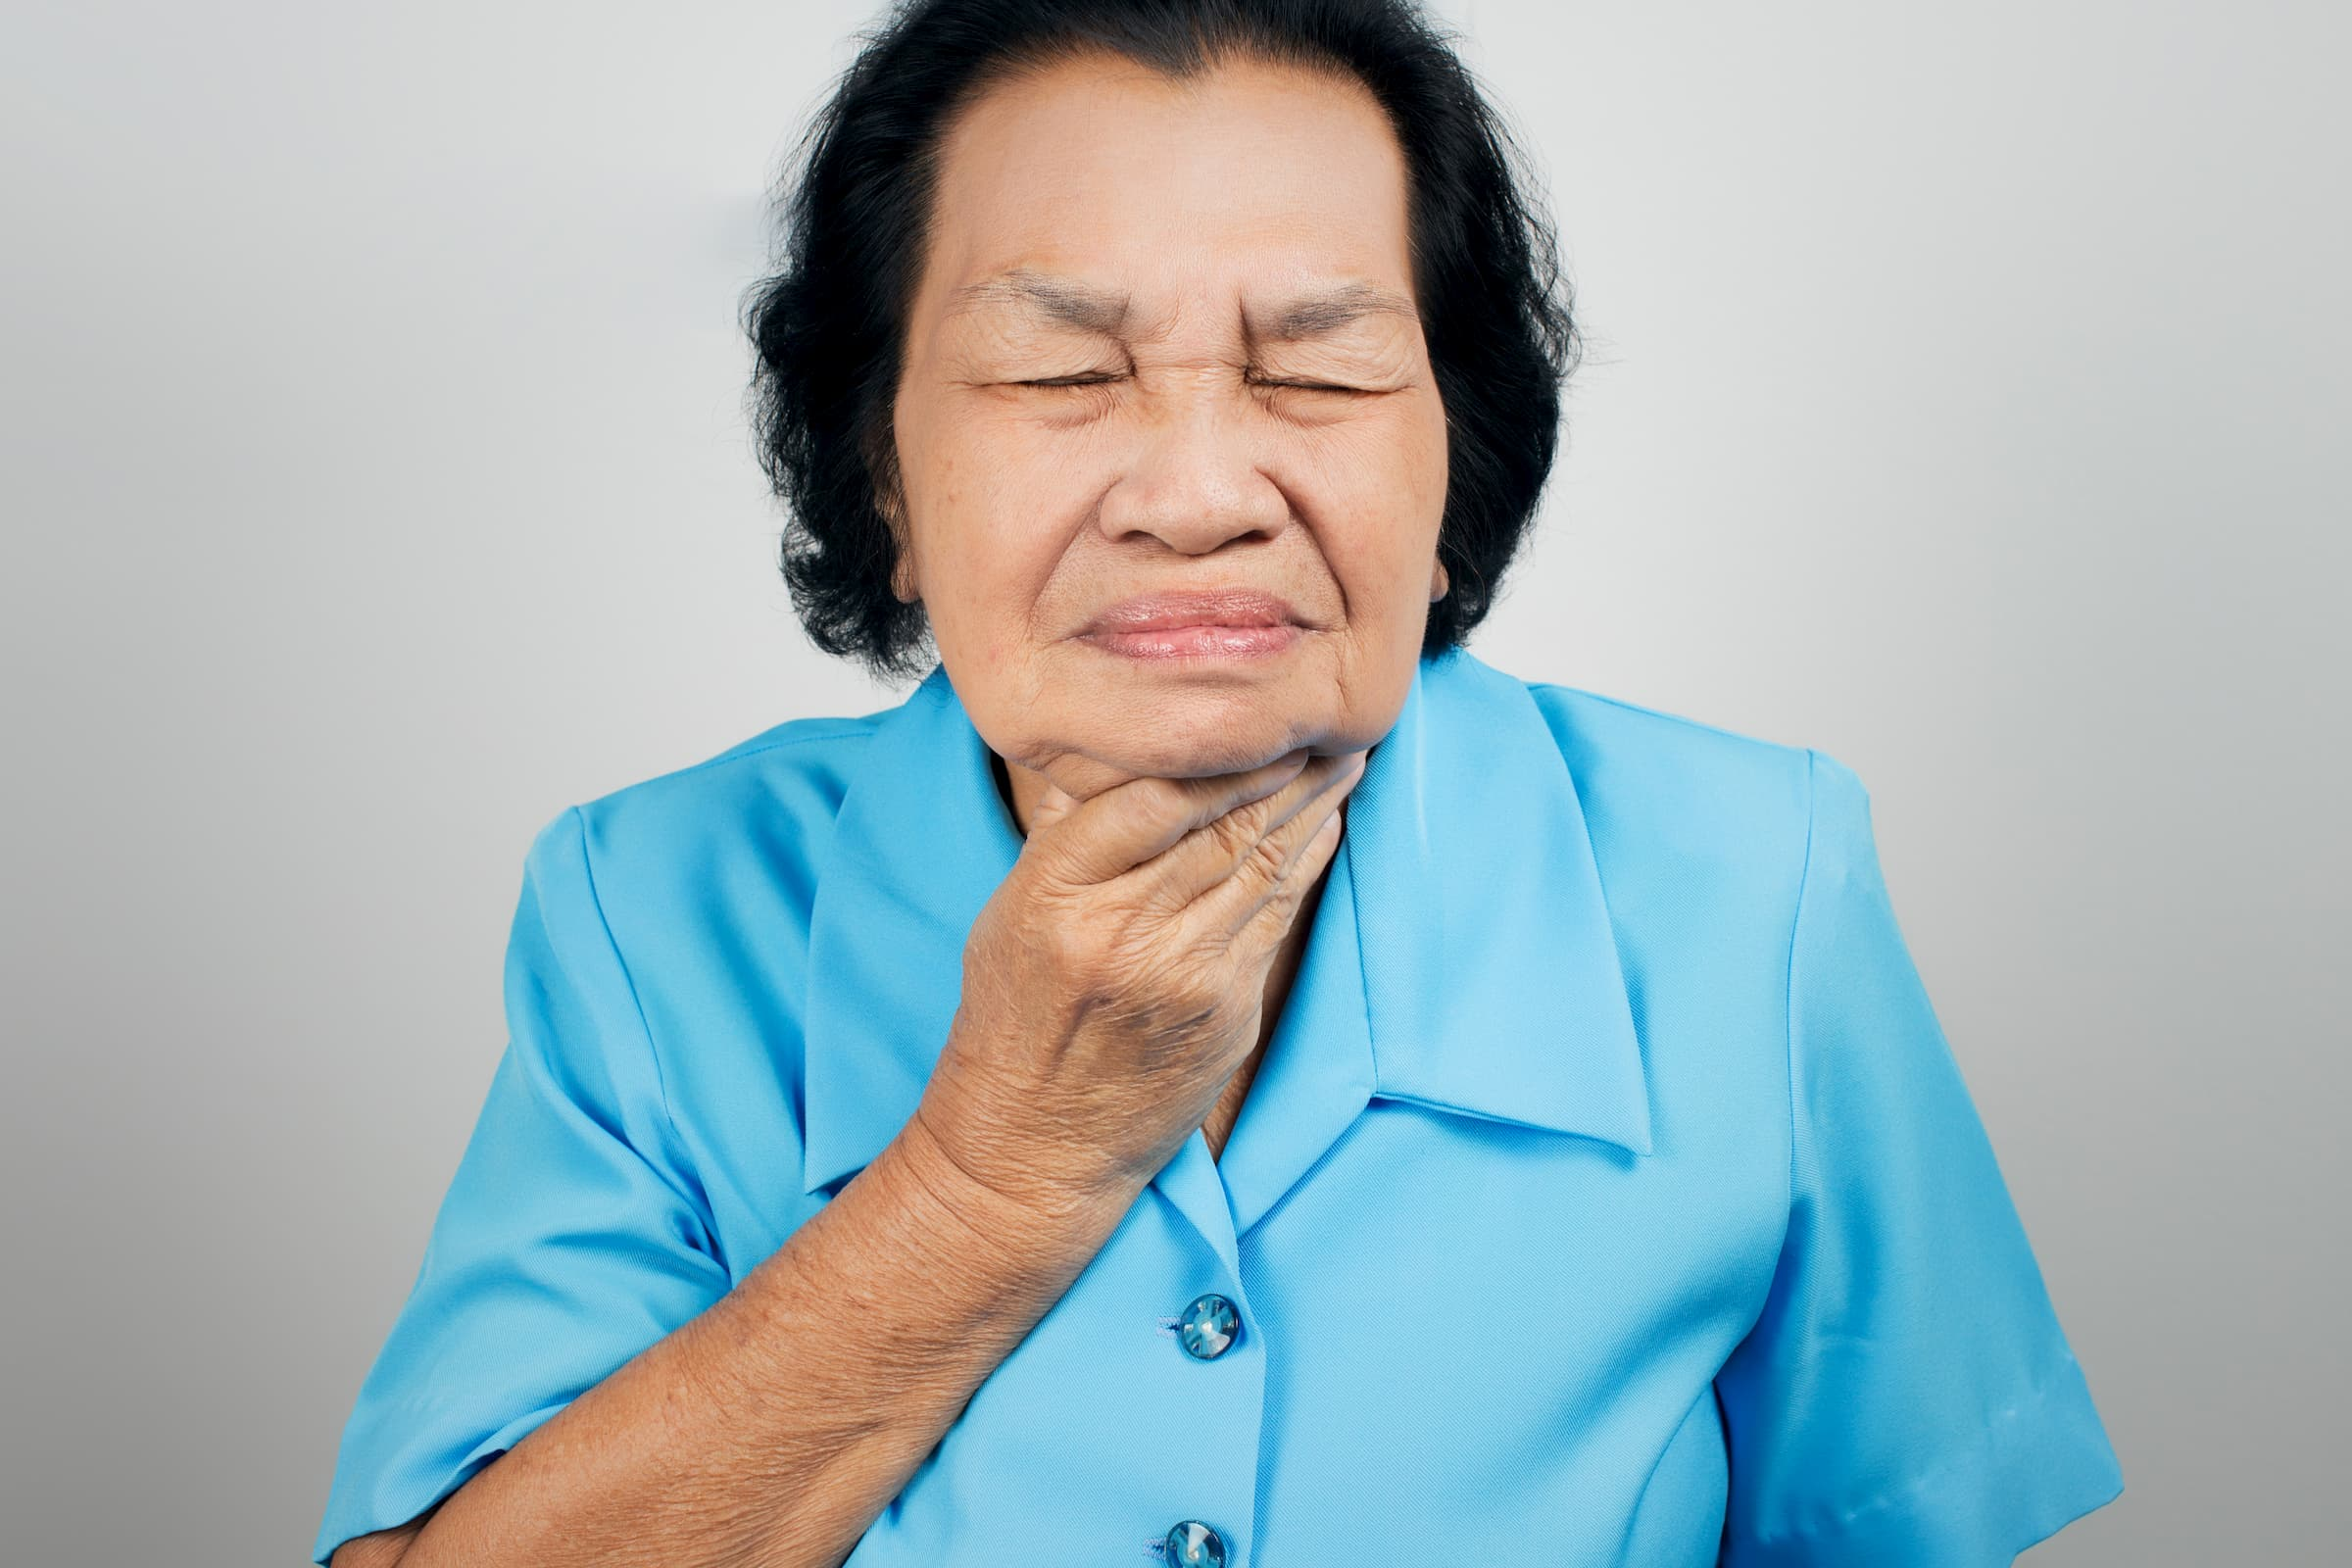 senior asian woman clutching throat for swallowing speech therapy representation